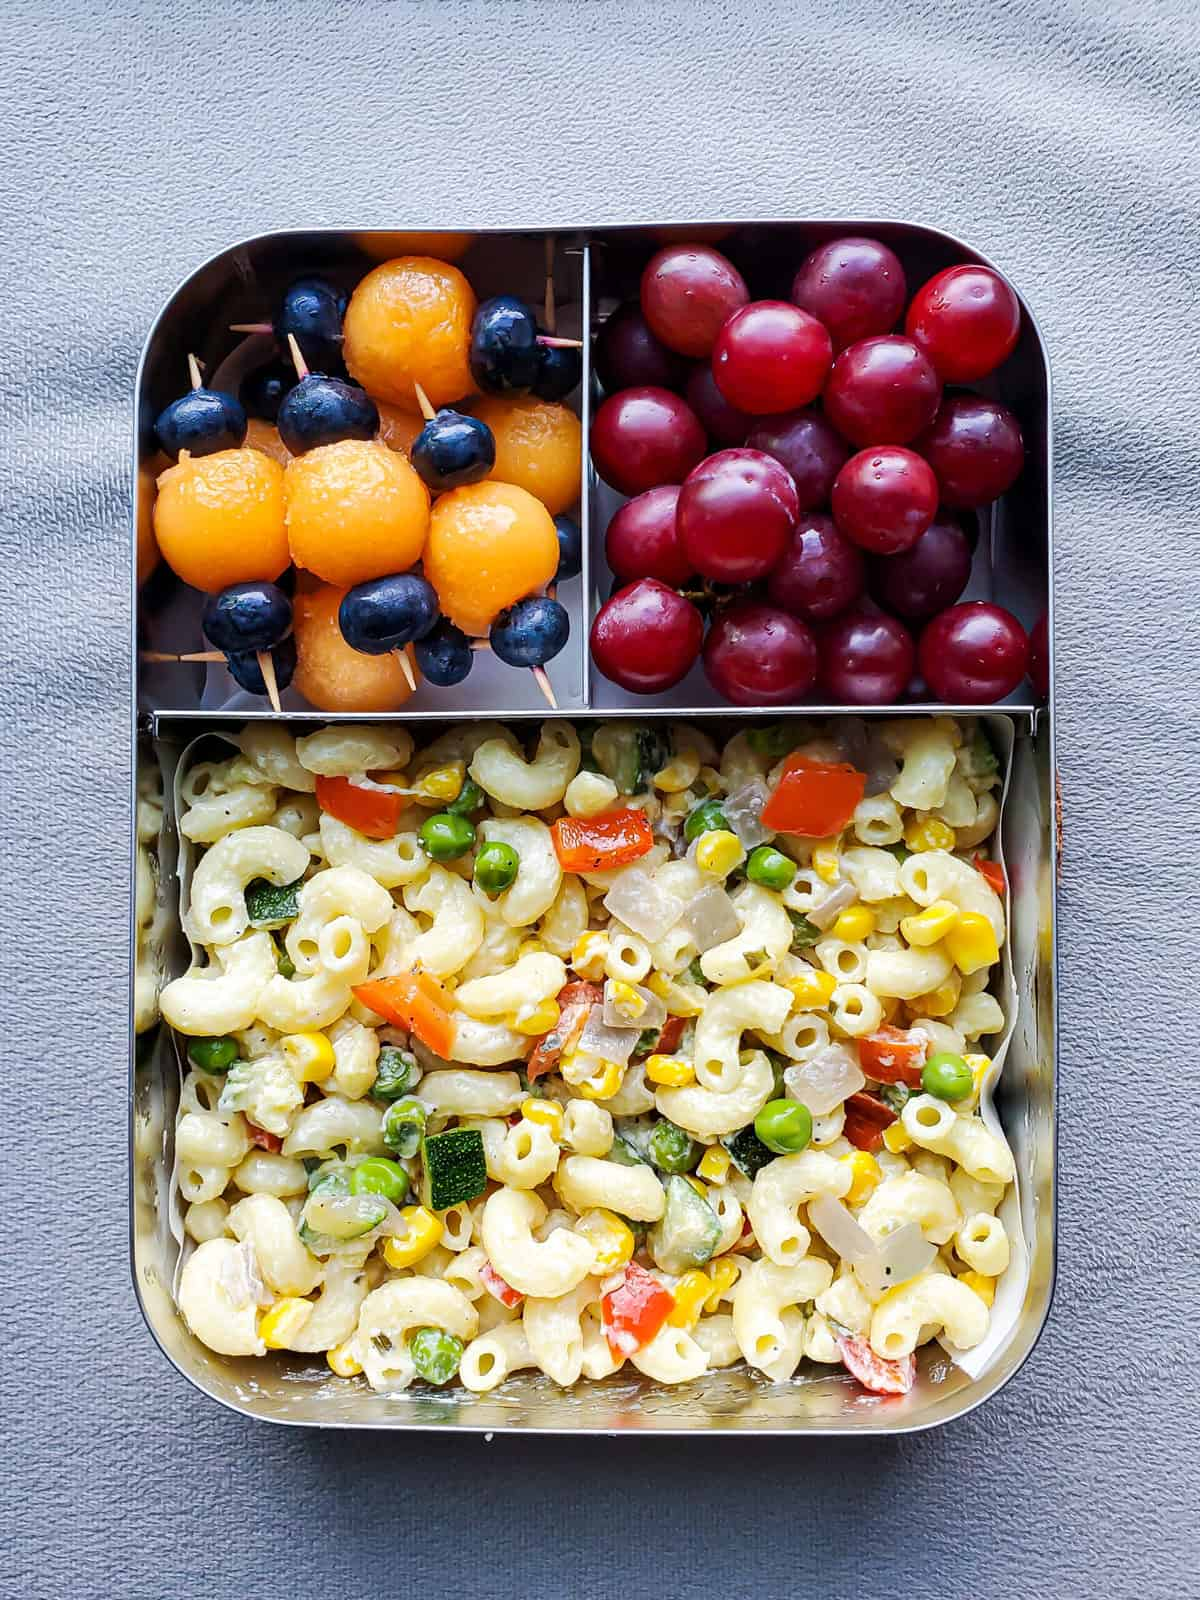 Creamy Garlic Pasta with veggies with fruits in a stainless steel lunchbox